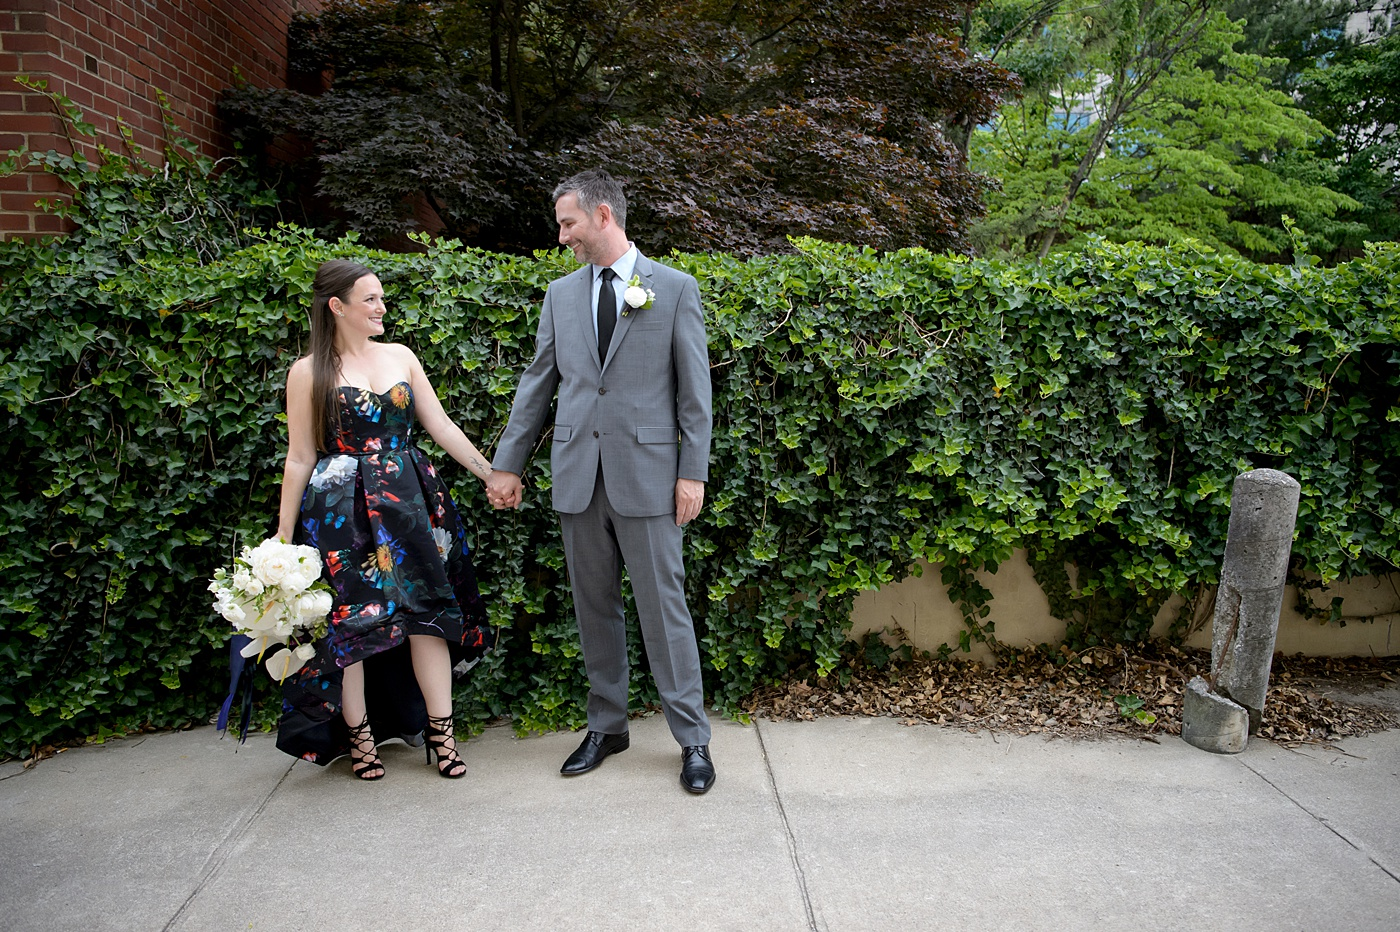 Mikkel Paige Photography's wedding photos - an elopement in downtown Raleigh, North Carolina - with a white bouquet by @meristemfloral, beauty by Wink Hair and Makeup and photos by Brian Mullins Photography.